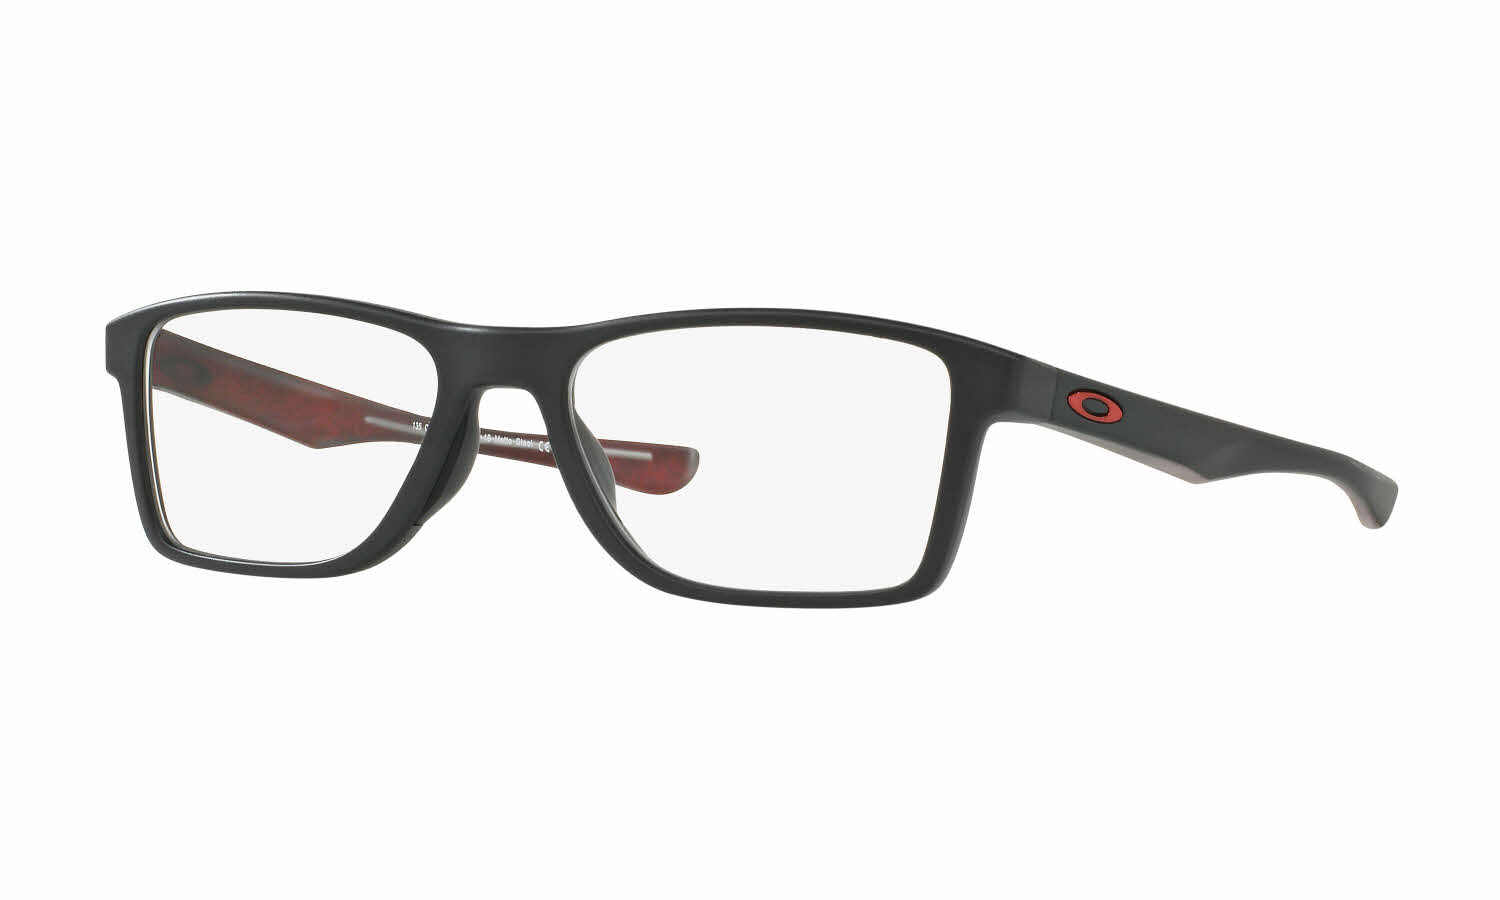 bea42858a6 Oakley Fin Box (TruBridge) Eyeglasses